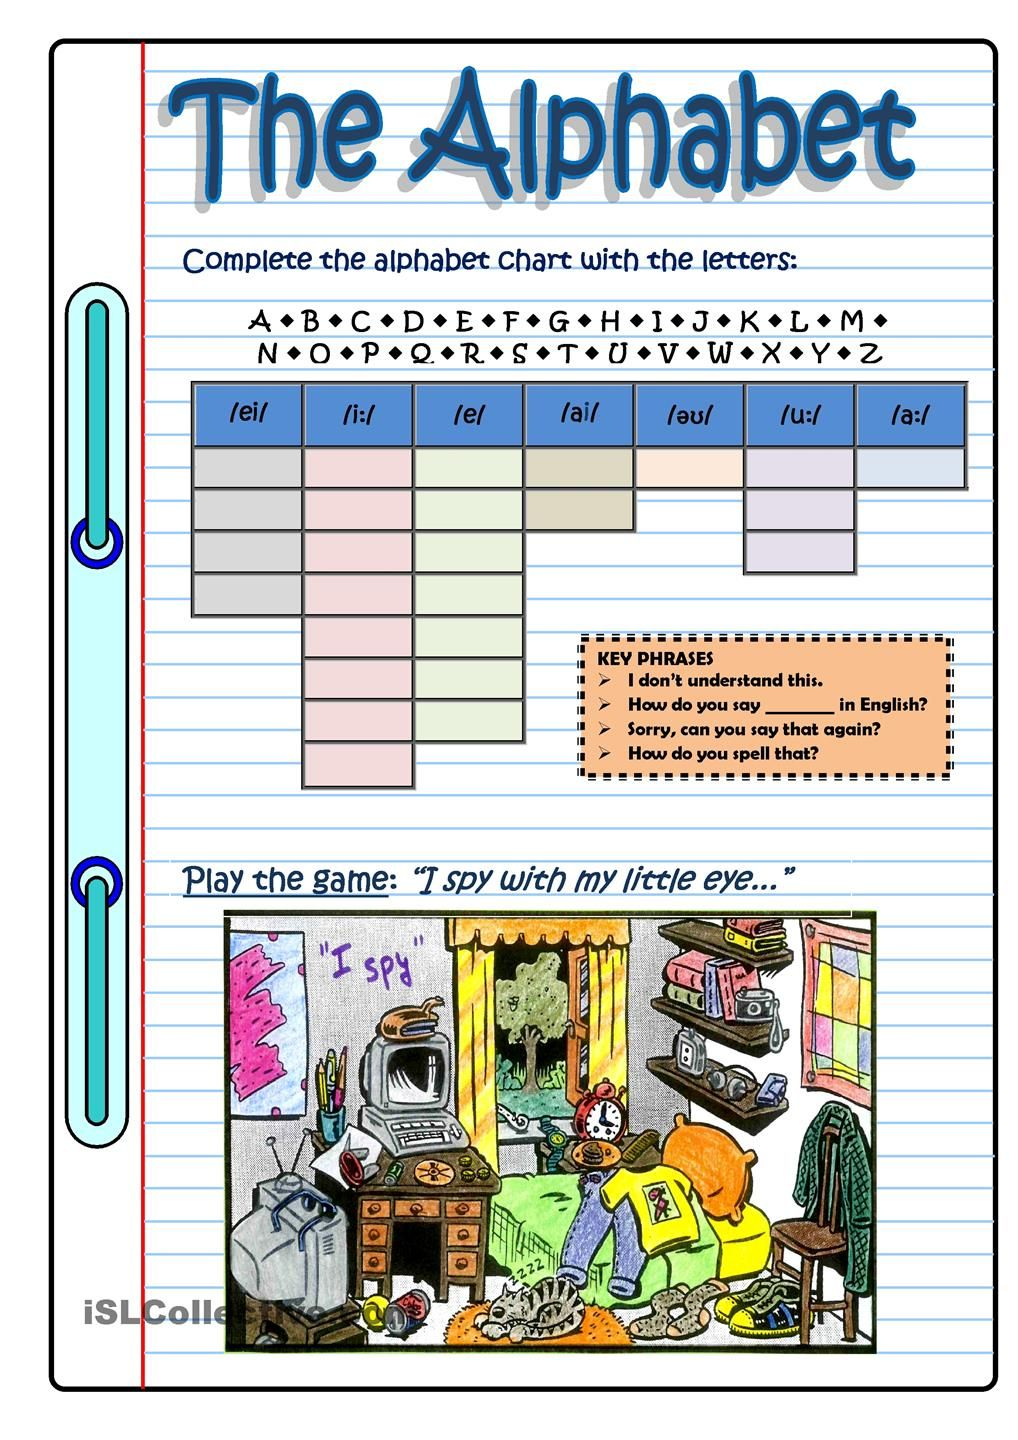 Workbooks pronunciation key worksheets : THE ALPHABET GAME | Follow my worksheets on islcollective ...